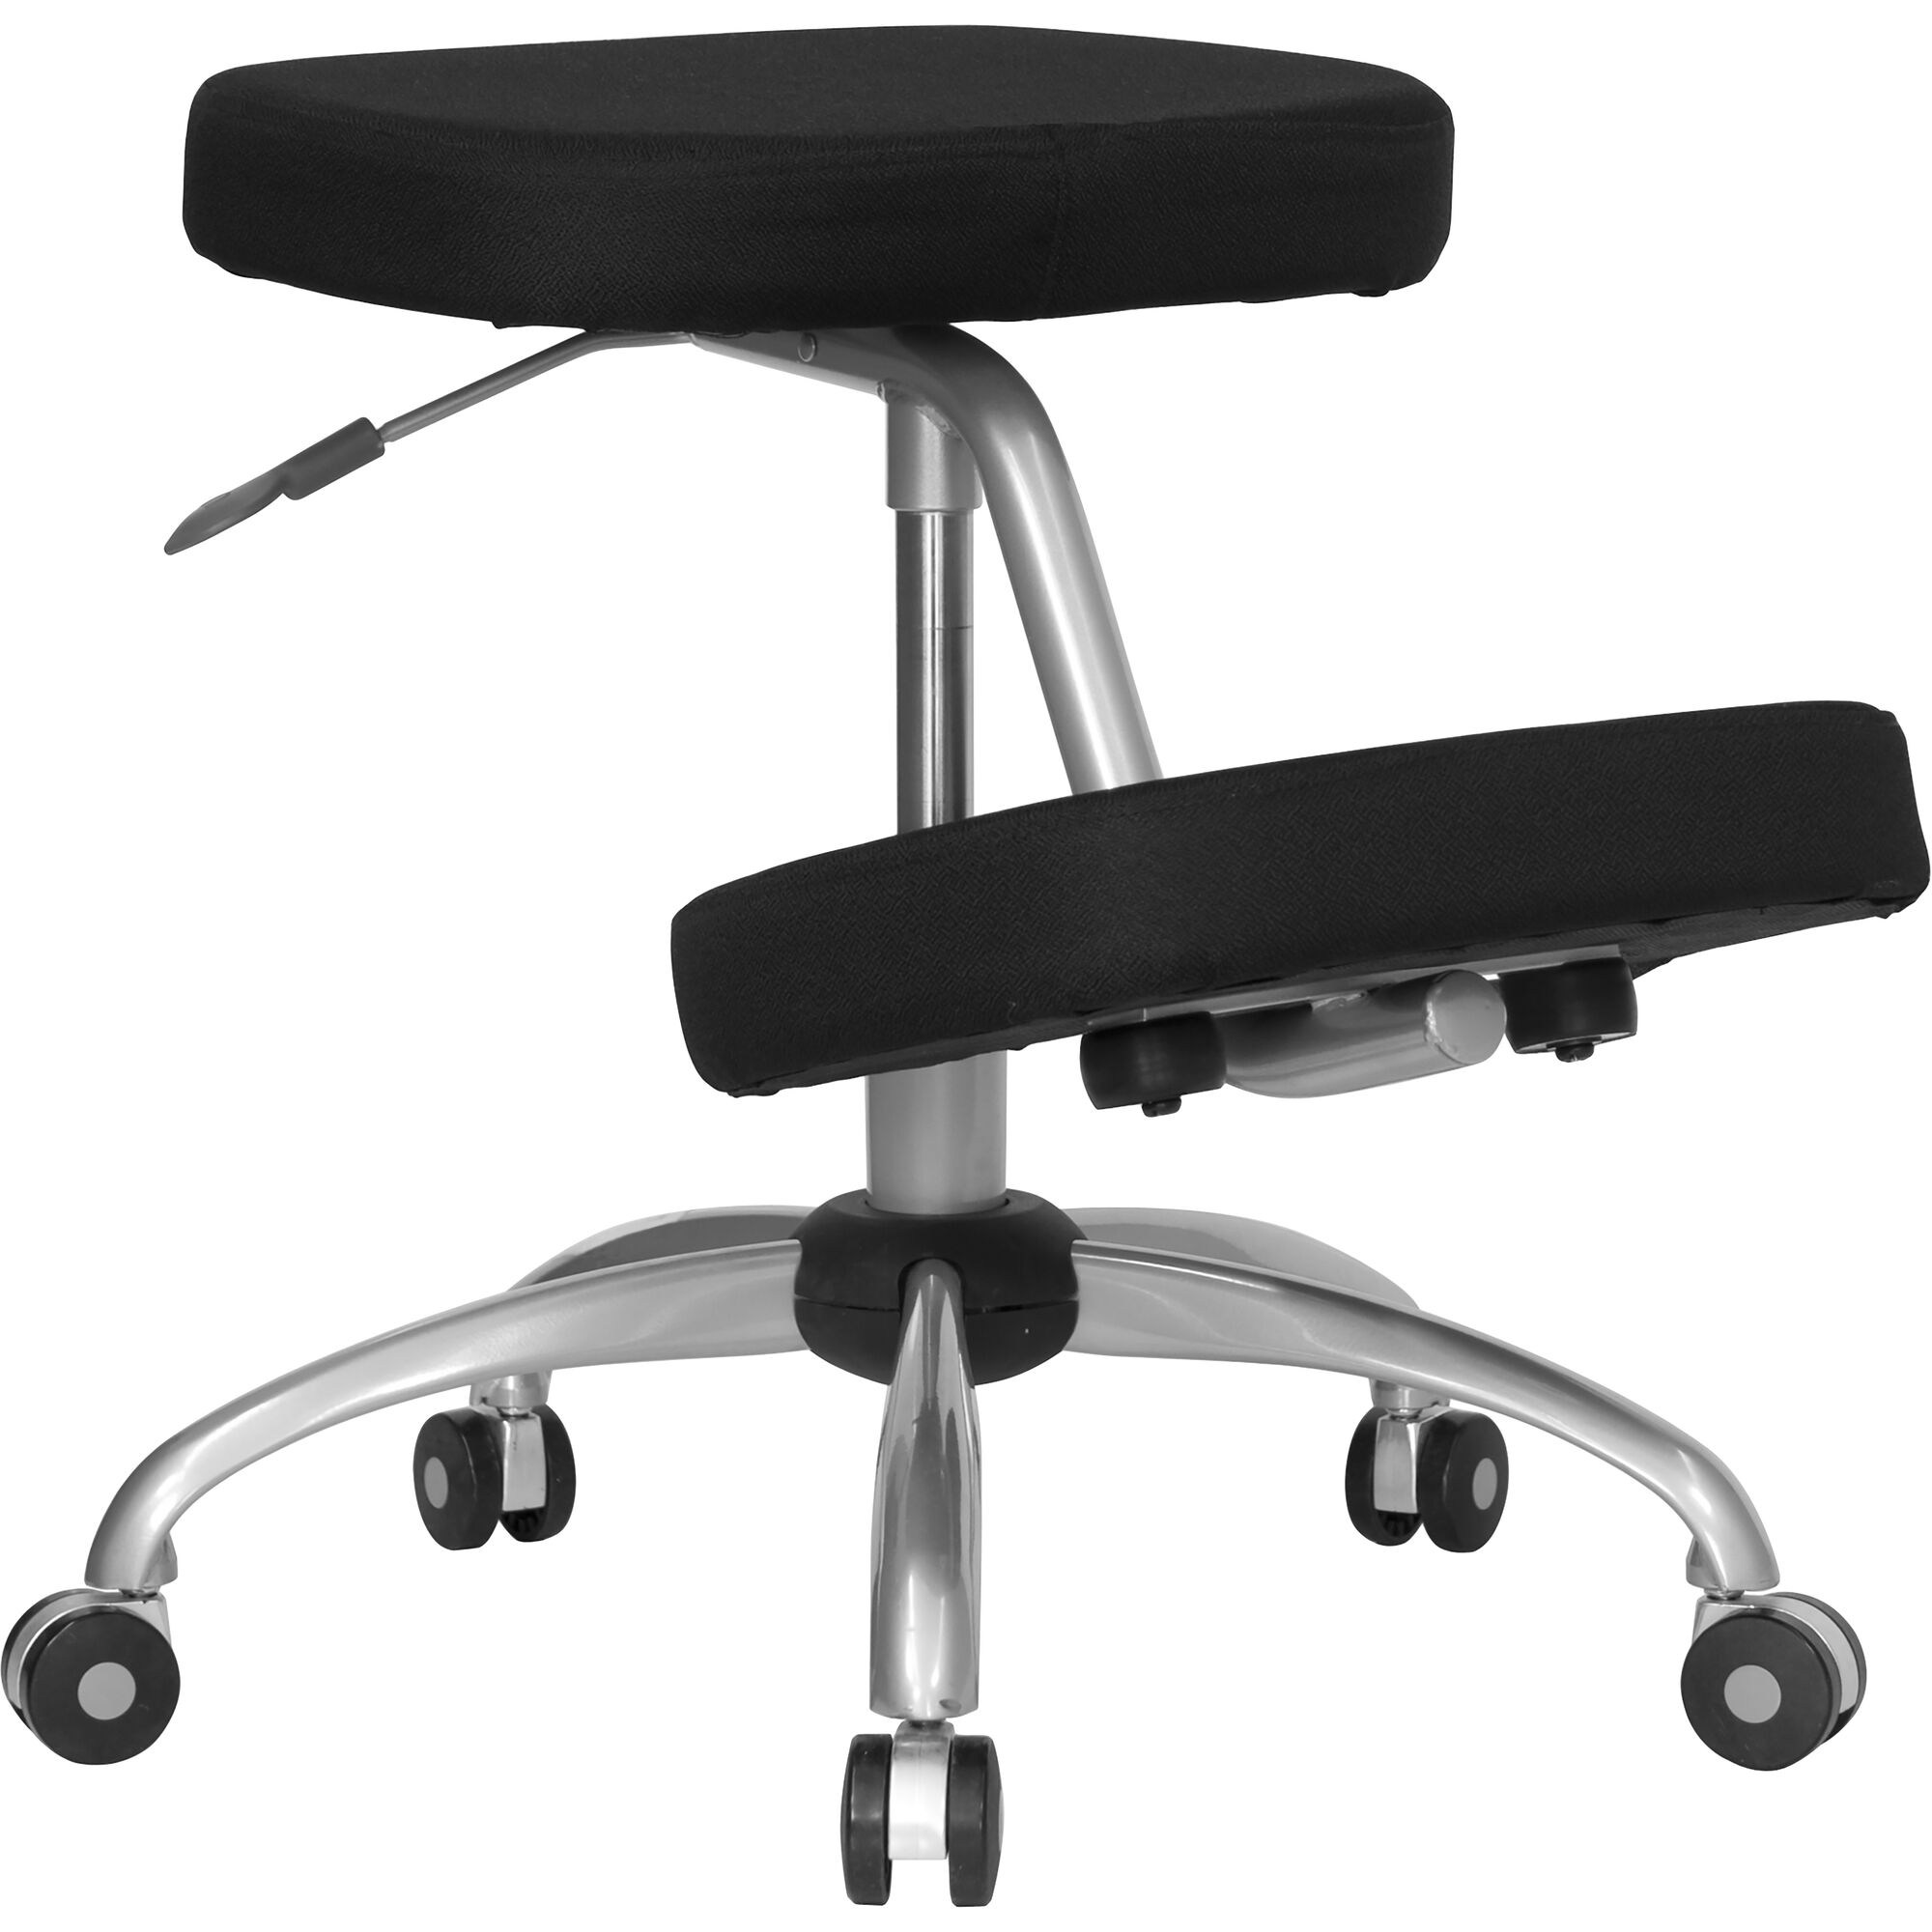 Our Mobile Ergonomic Kneeling Office Chair With Silver